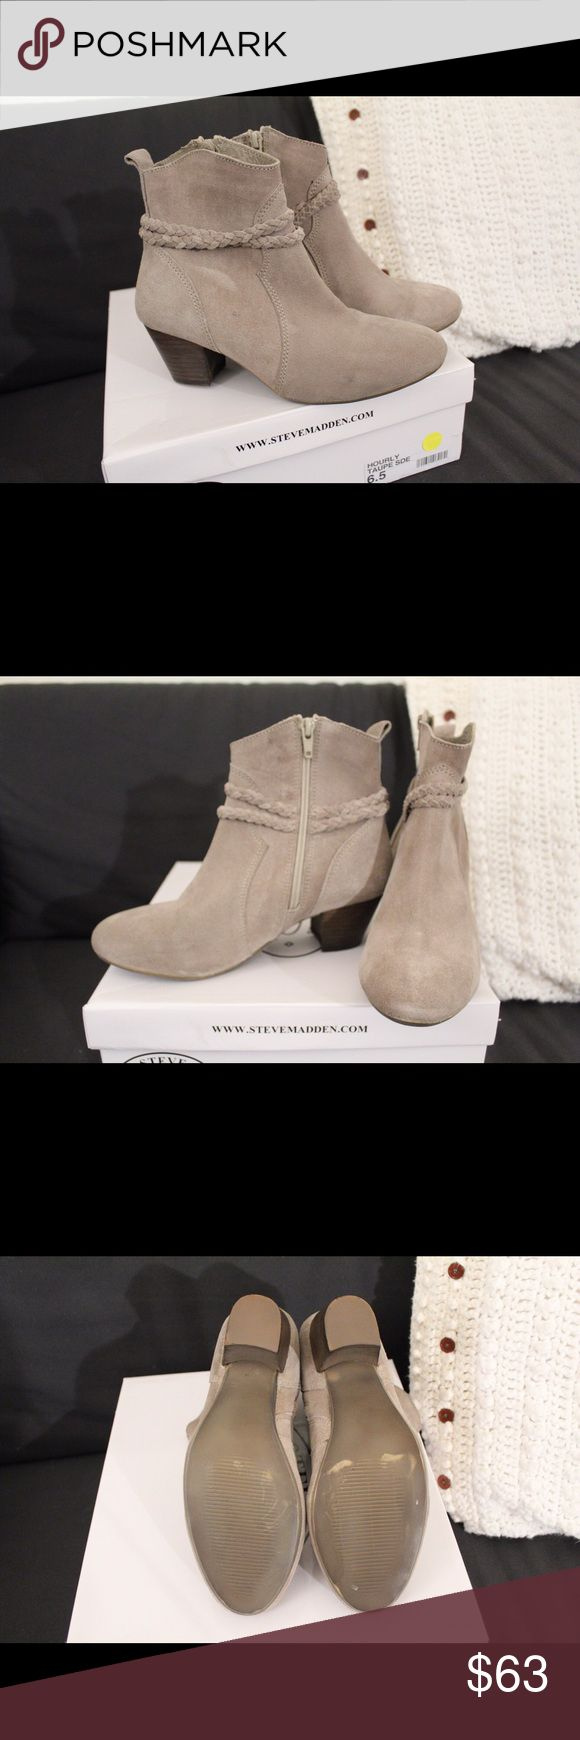 Size 6.5 Steve Madden suede booties New size 6.5 Steve Madden suede heeled booties. The small scratches at the soles came from trying the shoe at the store.  But guaranteed new! Purchased at $99. Steve Madden Shoes Ankle Boots & Booties